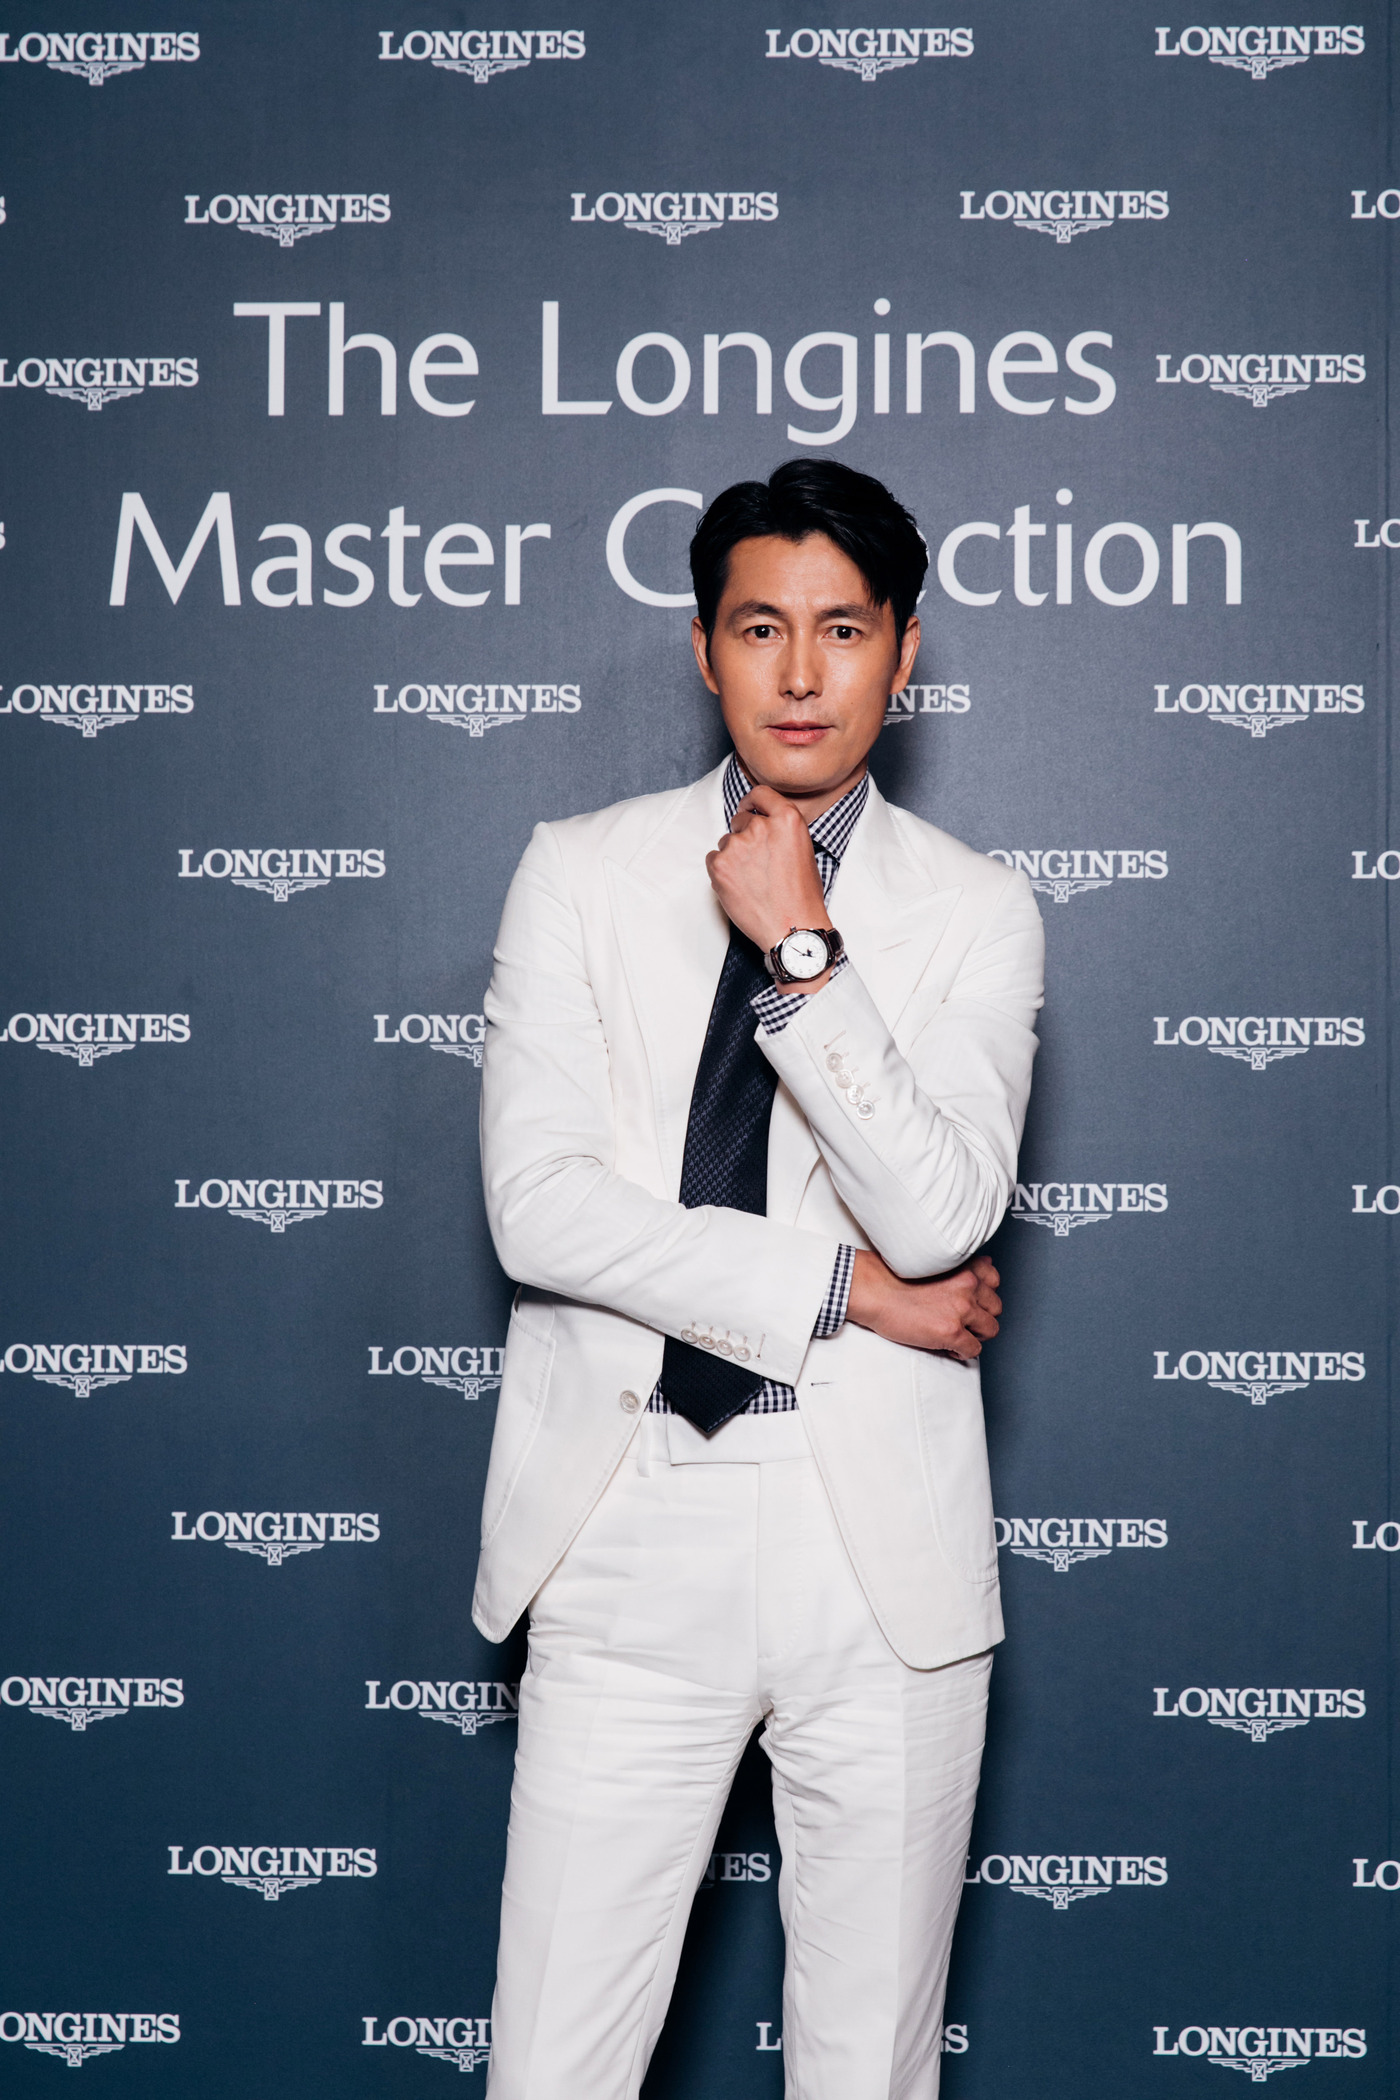 Longines Corporate Event: The latest models of The Longines Master Collection unveiled in Taiwan 5